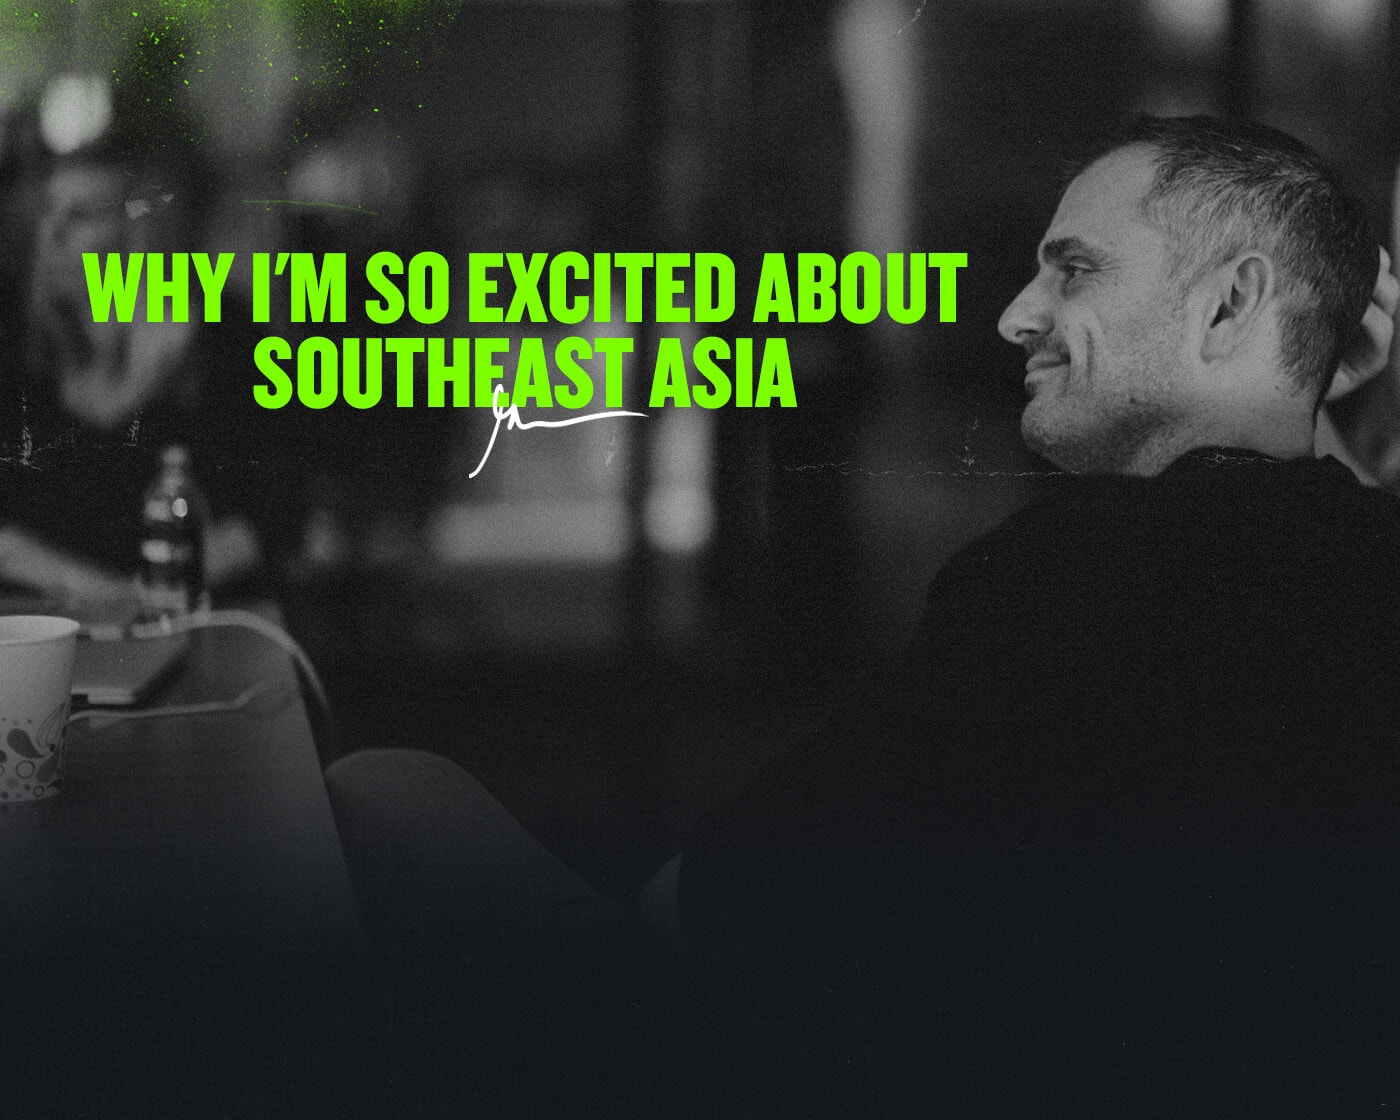 Why I'm excited about doing business in Southeast Asia